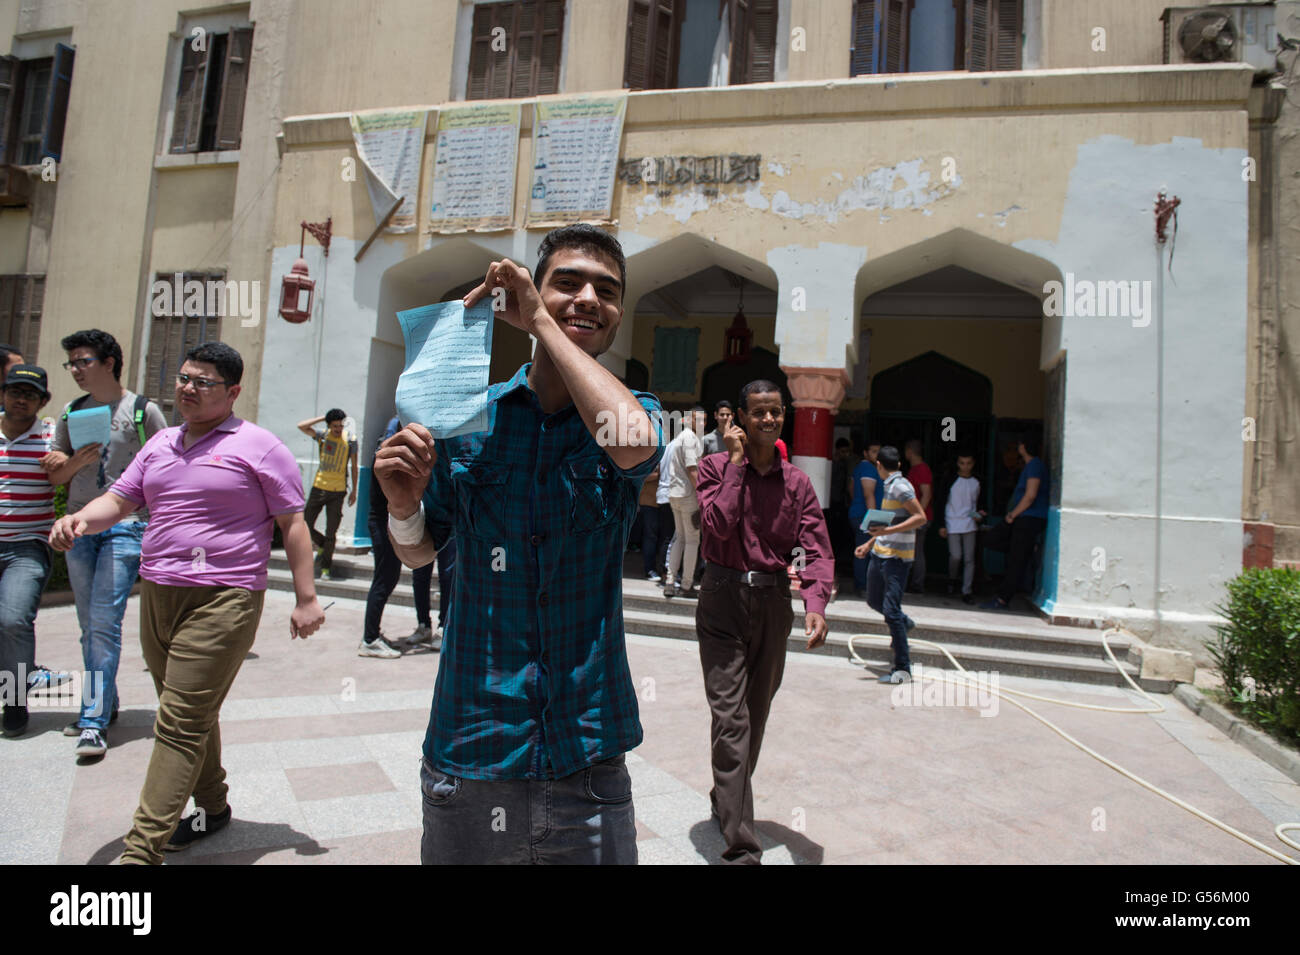 Cairo, Egypt. 21st June, 2016. Egyptian students leave a high school exams site in Cairo, Egypt, June 21, 2016. - Stock Image